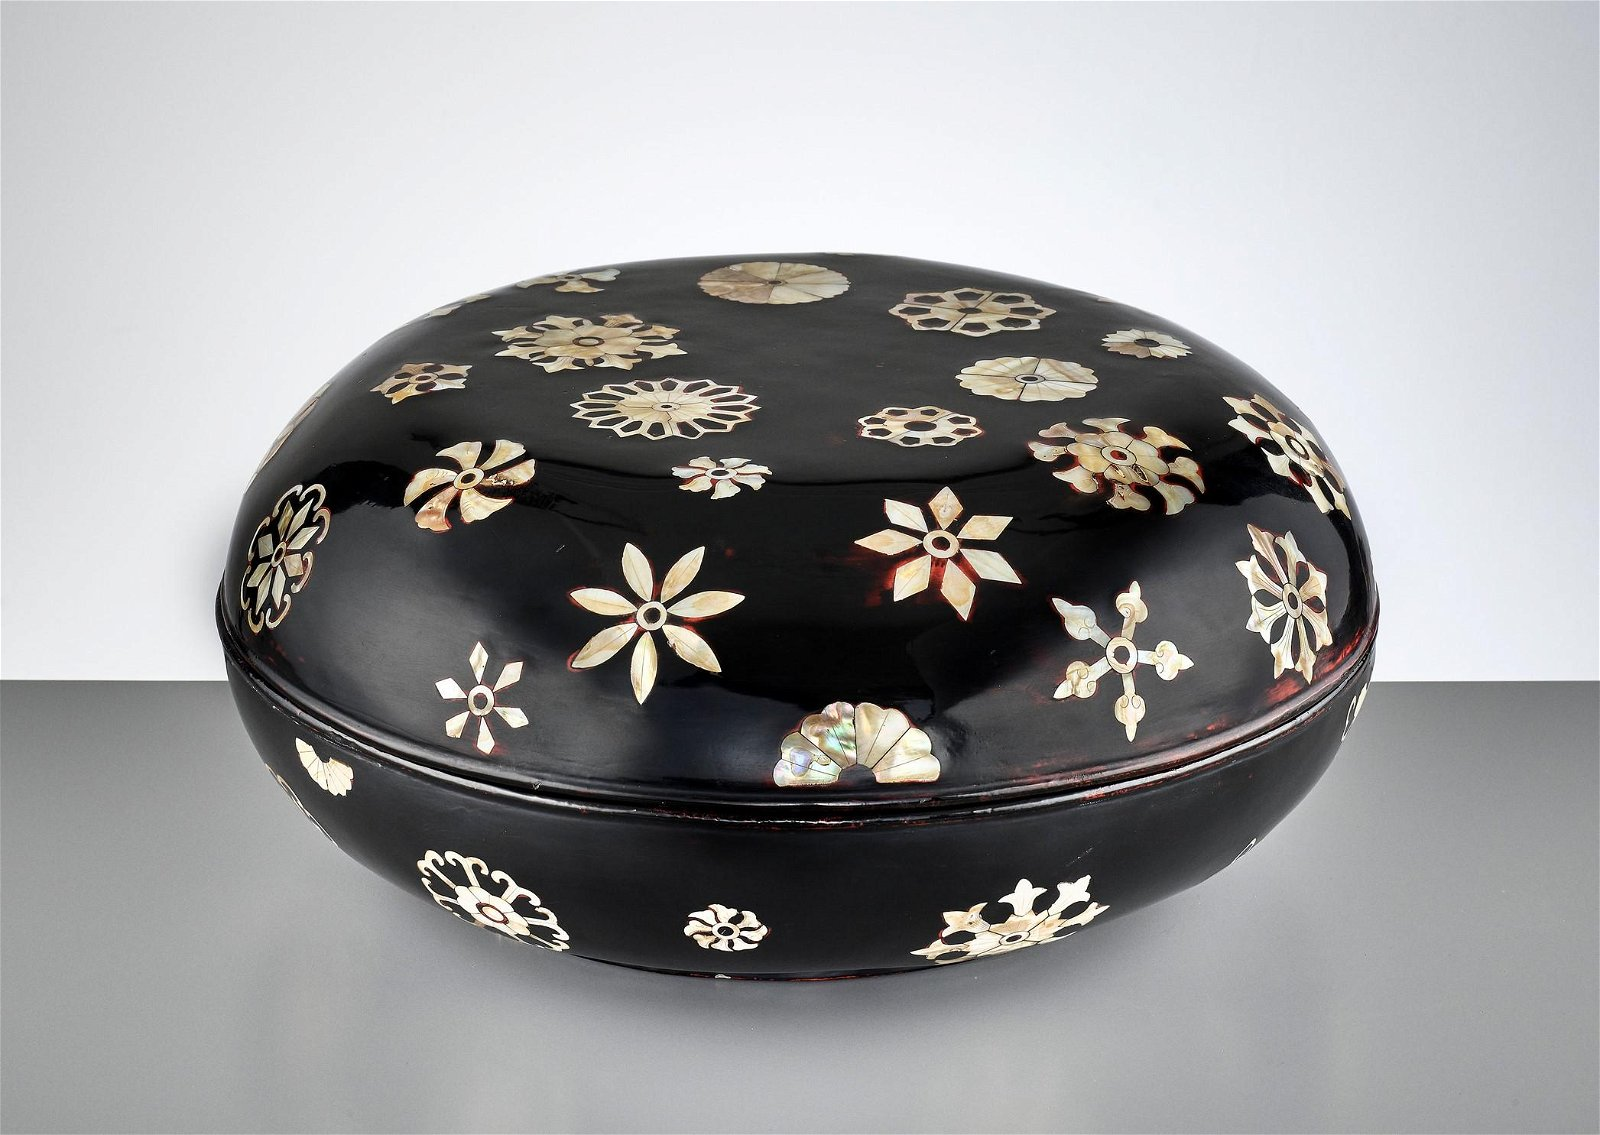 A MOTHER-OF-PEARL-INLAID LACQUER BOX